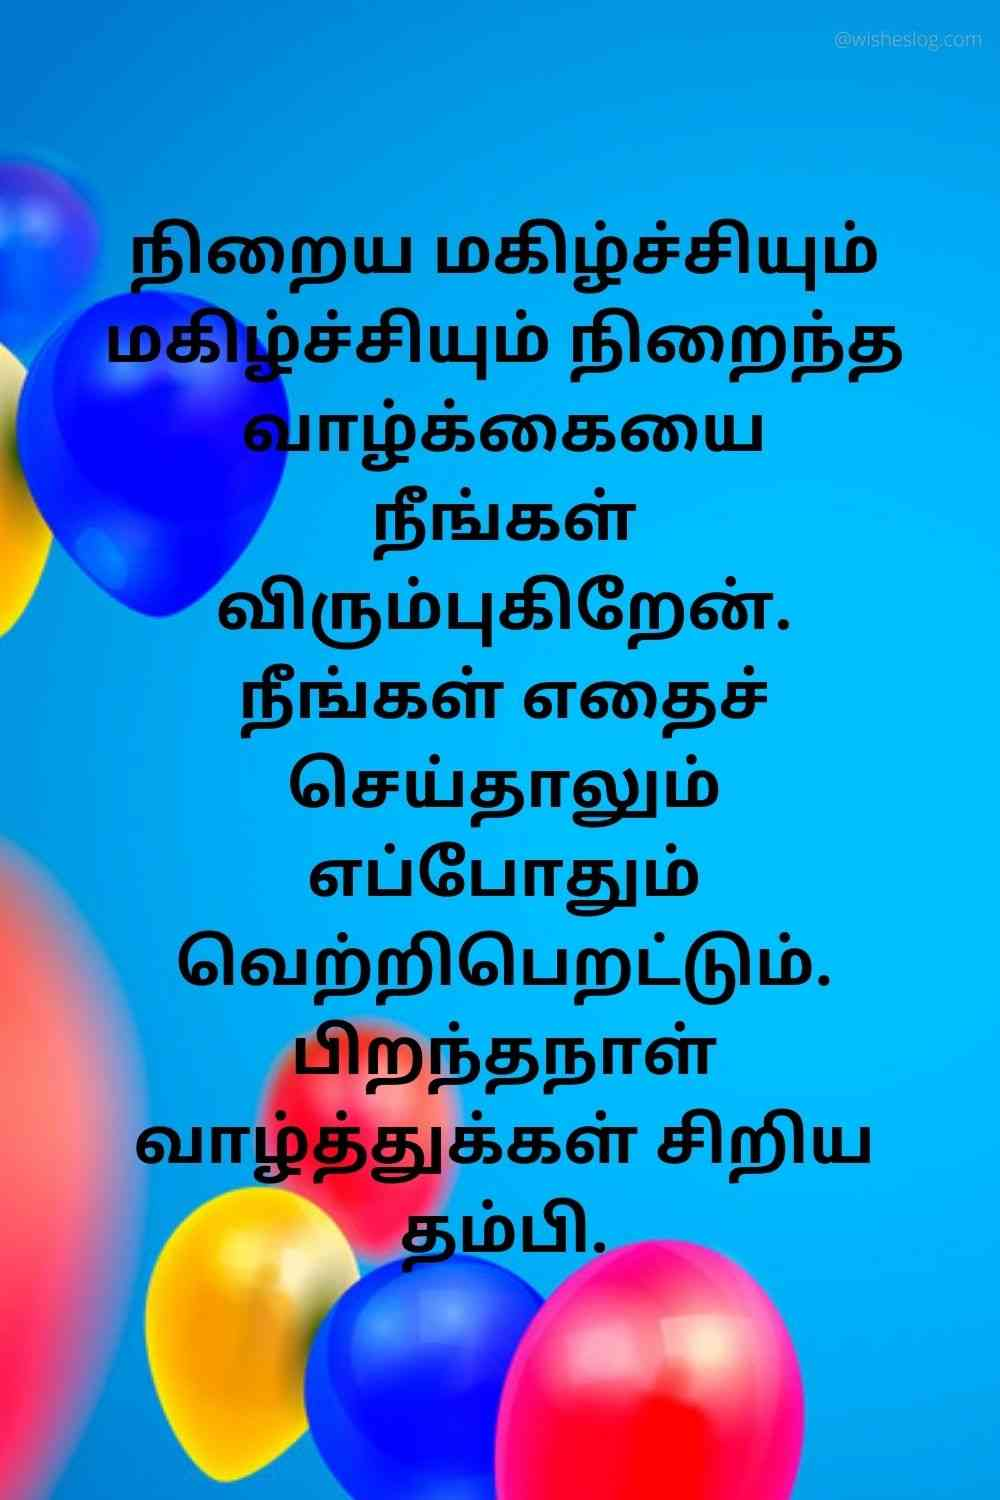 happy birthday images in tamil for younger brother